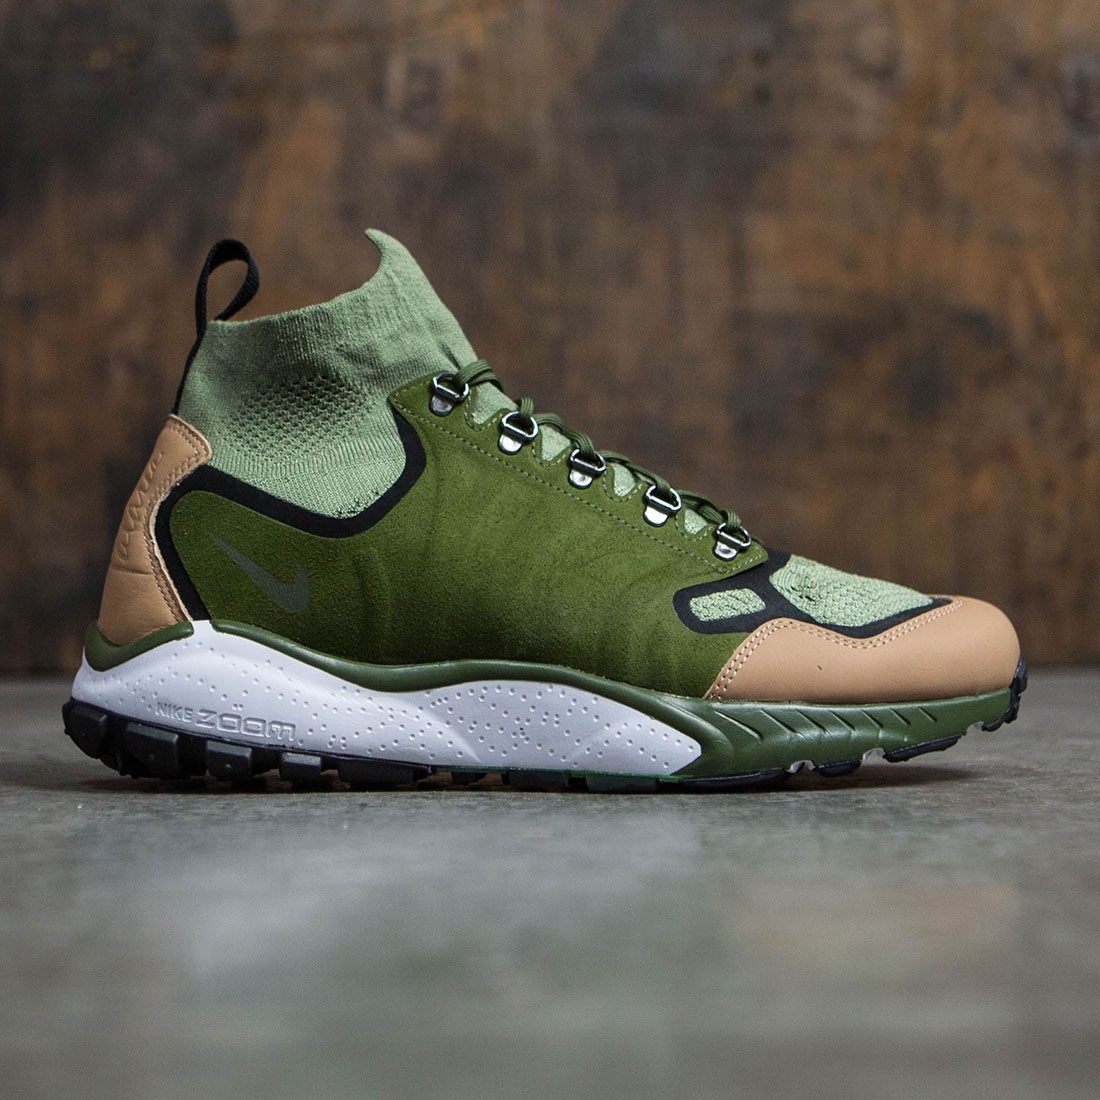 0399a49681cf Nike Men Air Zoom Talaria Mid Flyknit Premium (palm green   legion  green-vachetta tan)